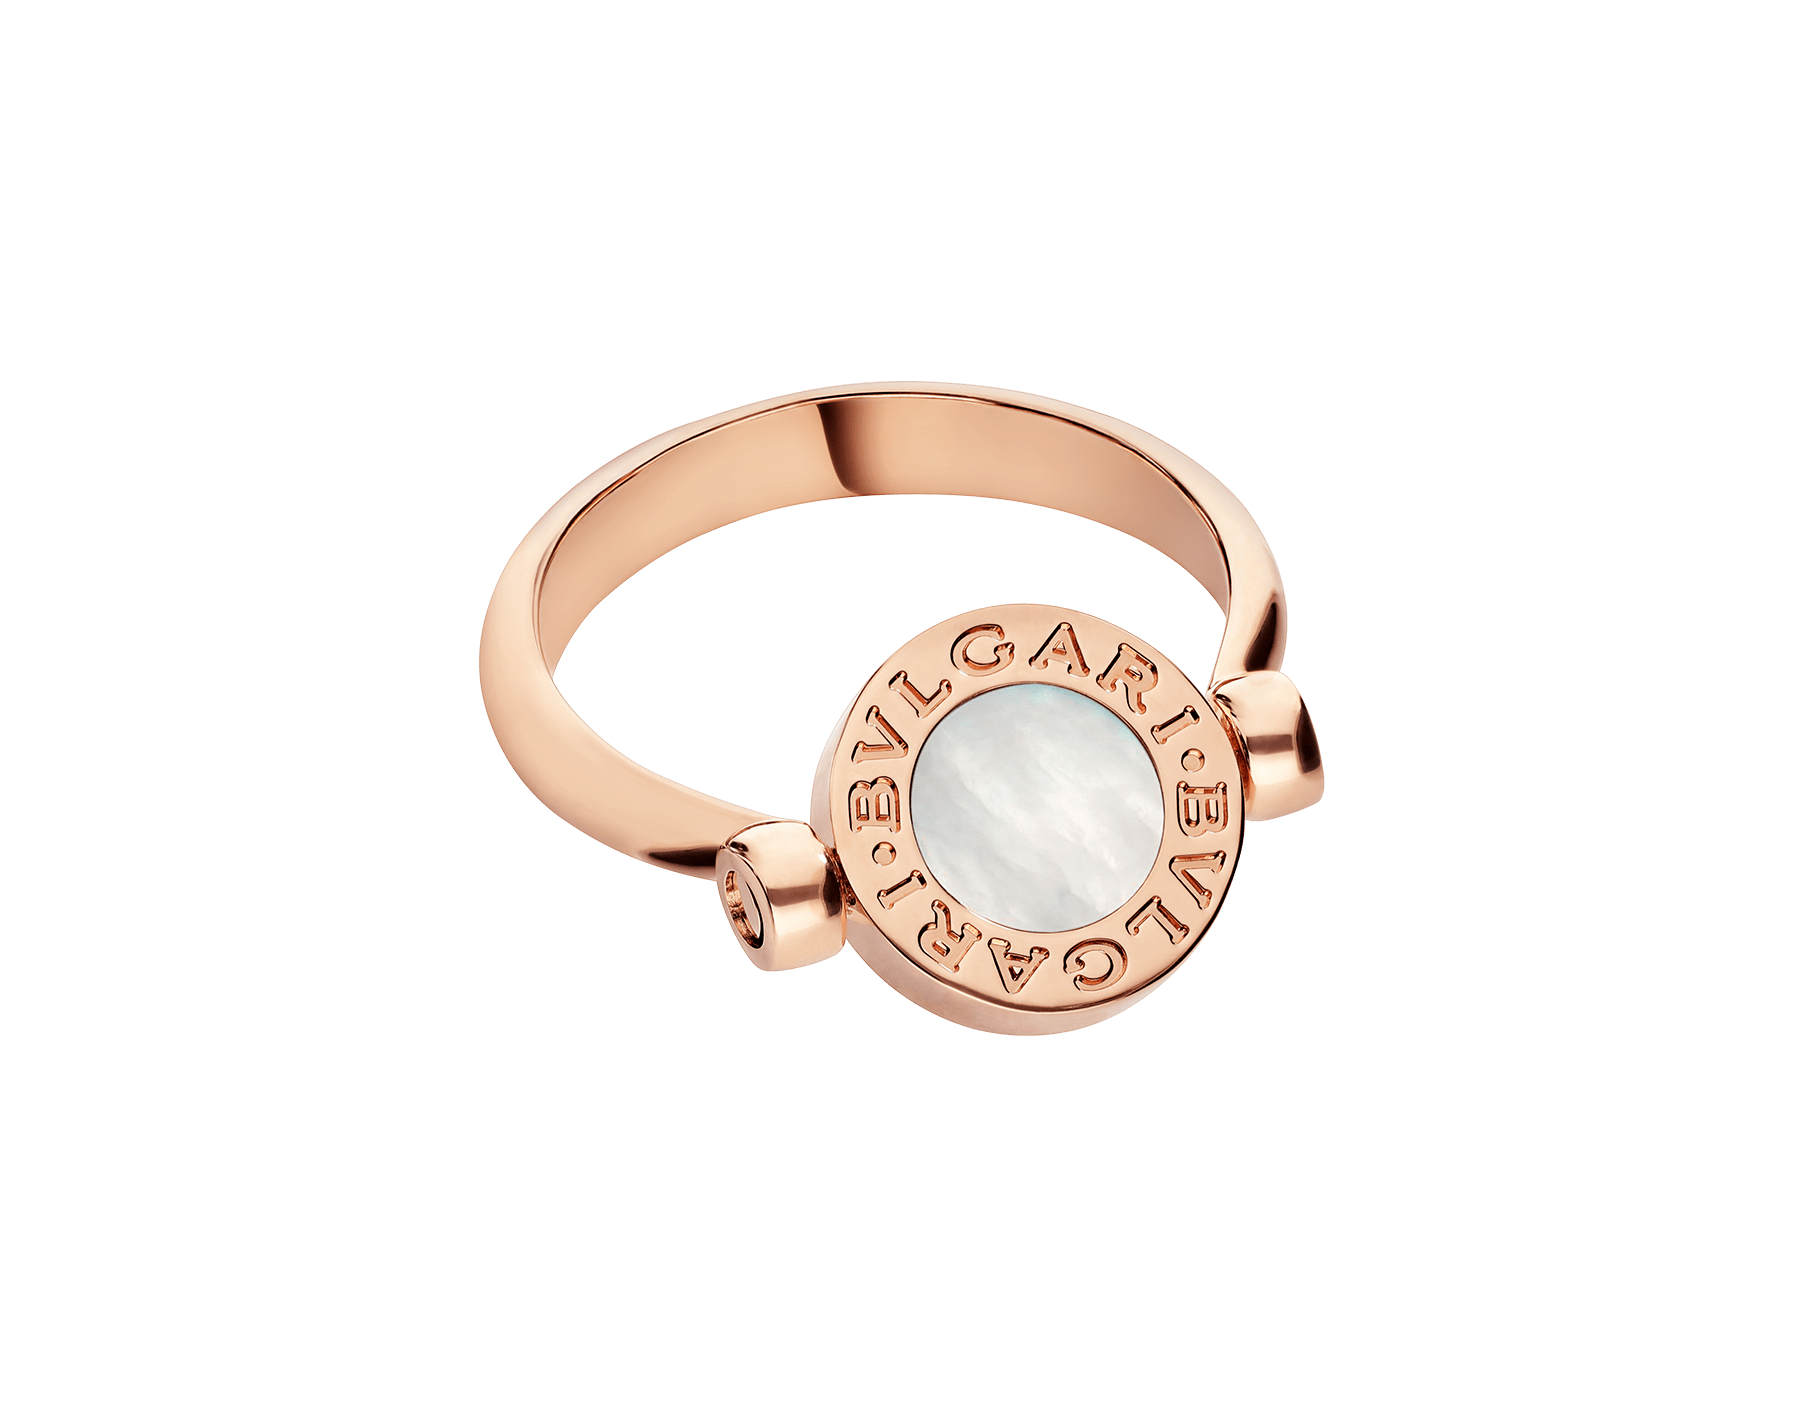 BVLGARI BVLGARI 18 kt rose gold flip ring set with mother-of-pearl and carnelian elements AN858197 image 4